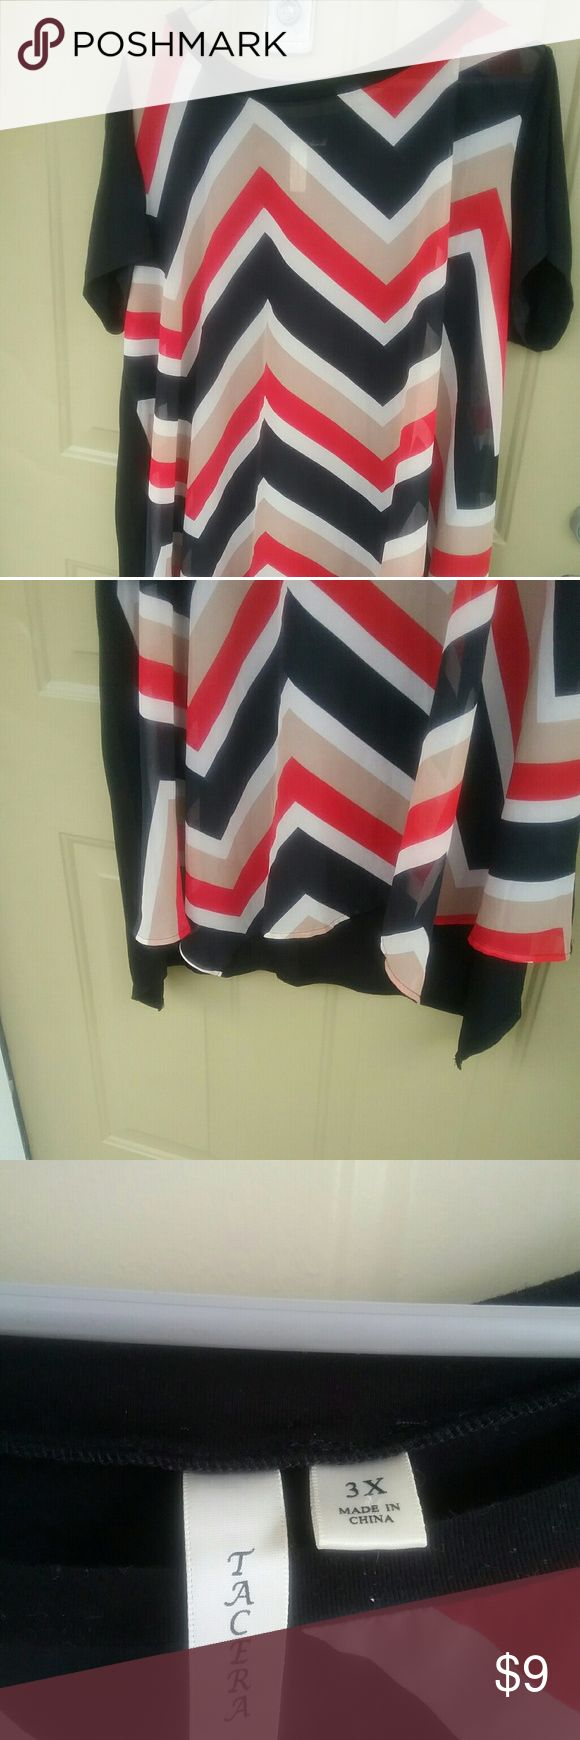 Hi low Chevron top plus zize Red black and beige   slightly  hi low     great with jeans  says 3x but fits more like 2x Tops Blouses